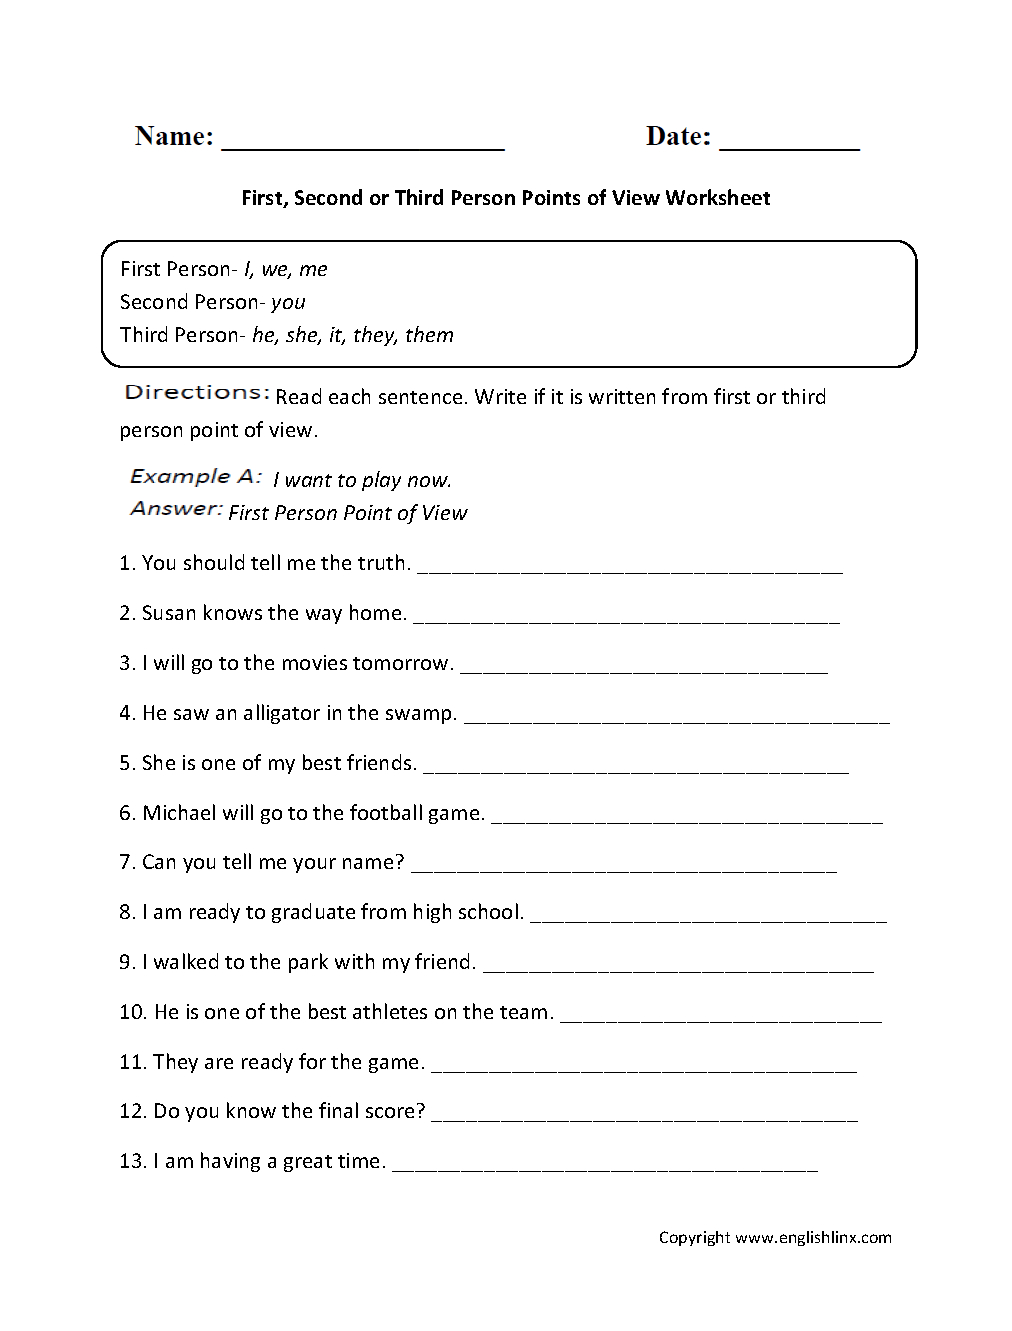 First, Second Or Third Person Points Of View Worksheet | Great - Free Printable Worksheets For 1St Grade Language Arts